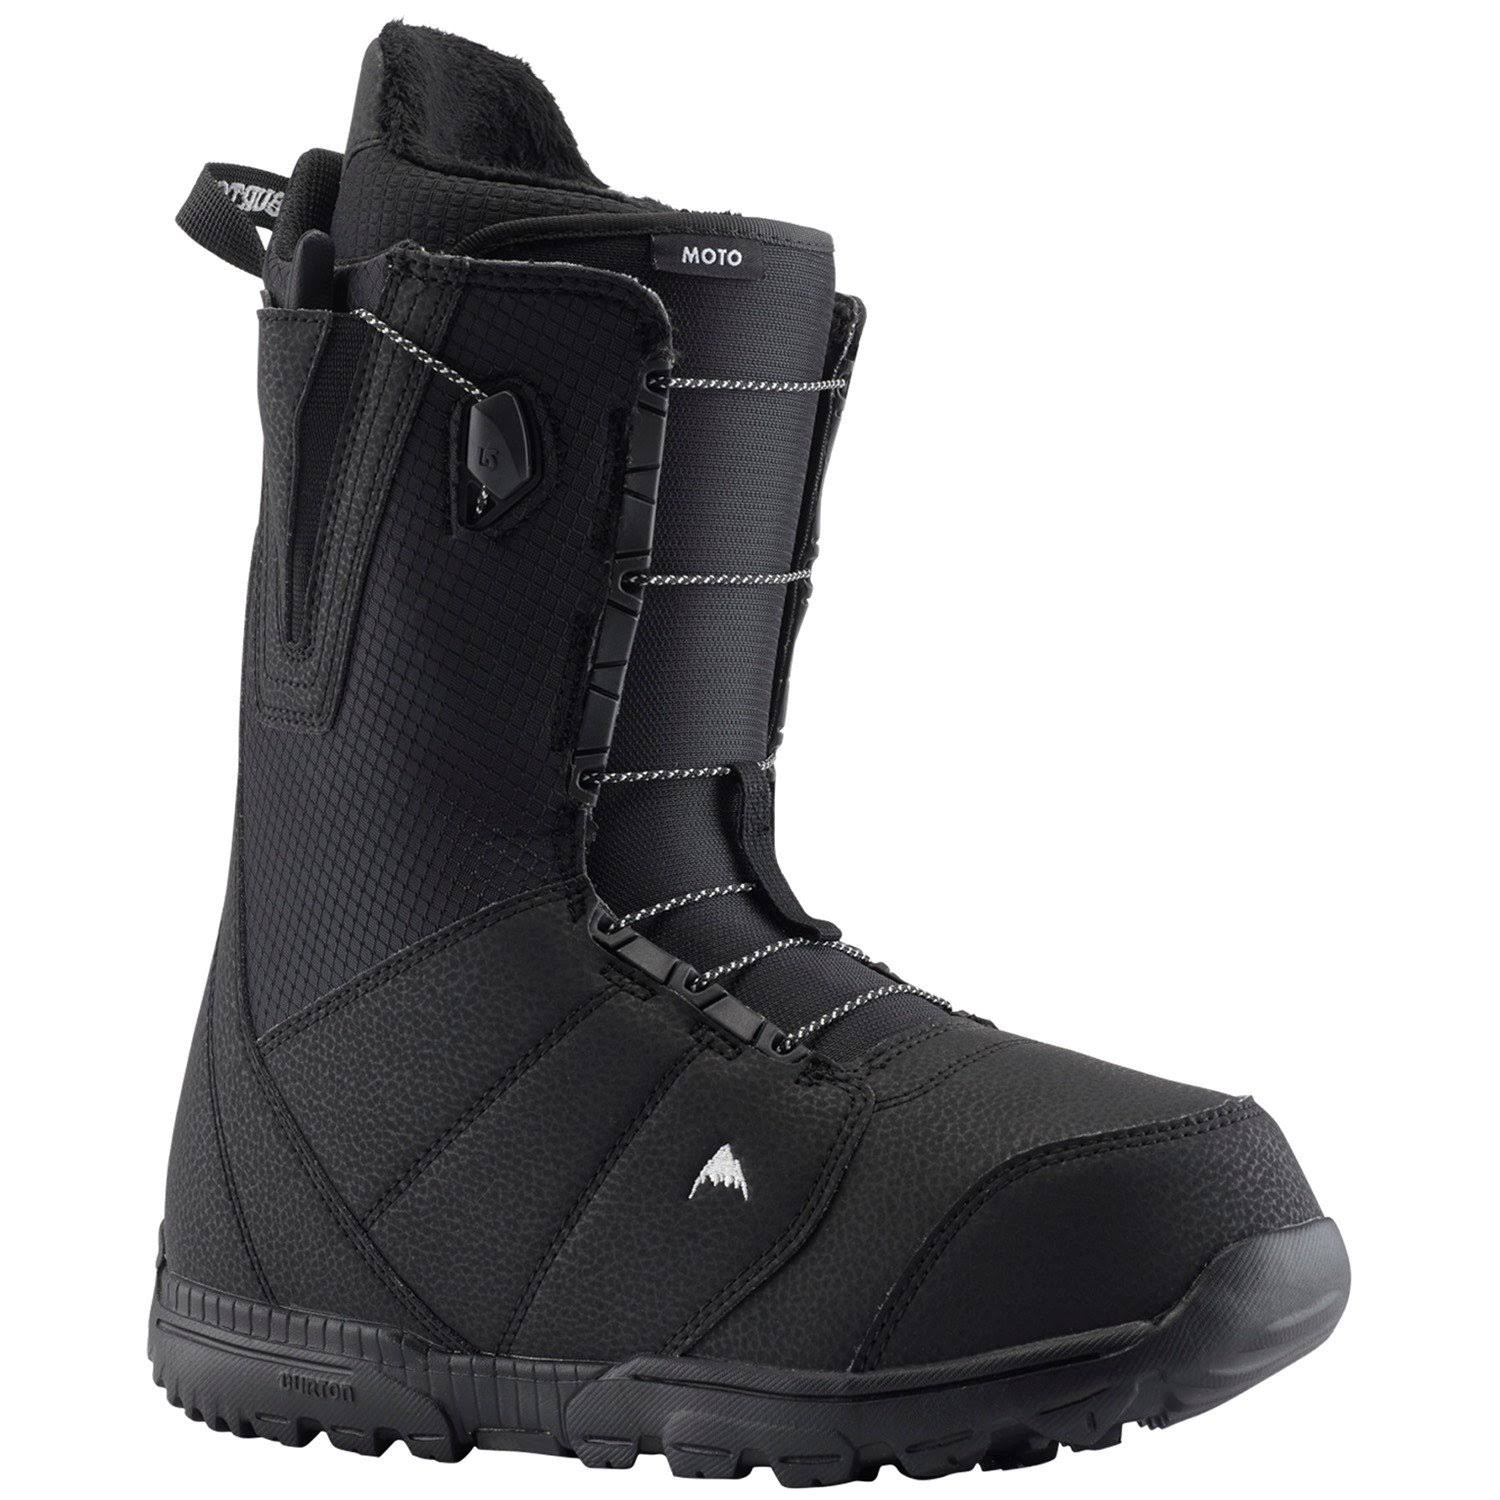 Burton Men's Moto Snowboard Boot, Black, 8.5